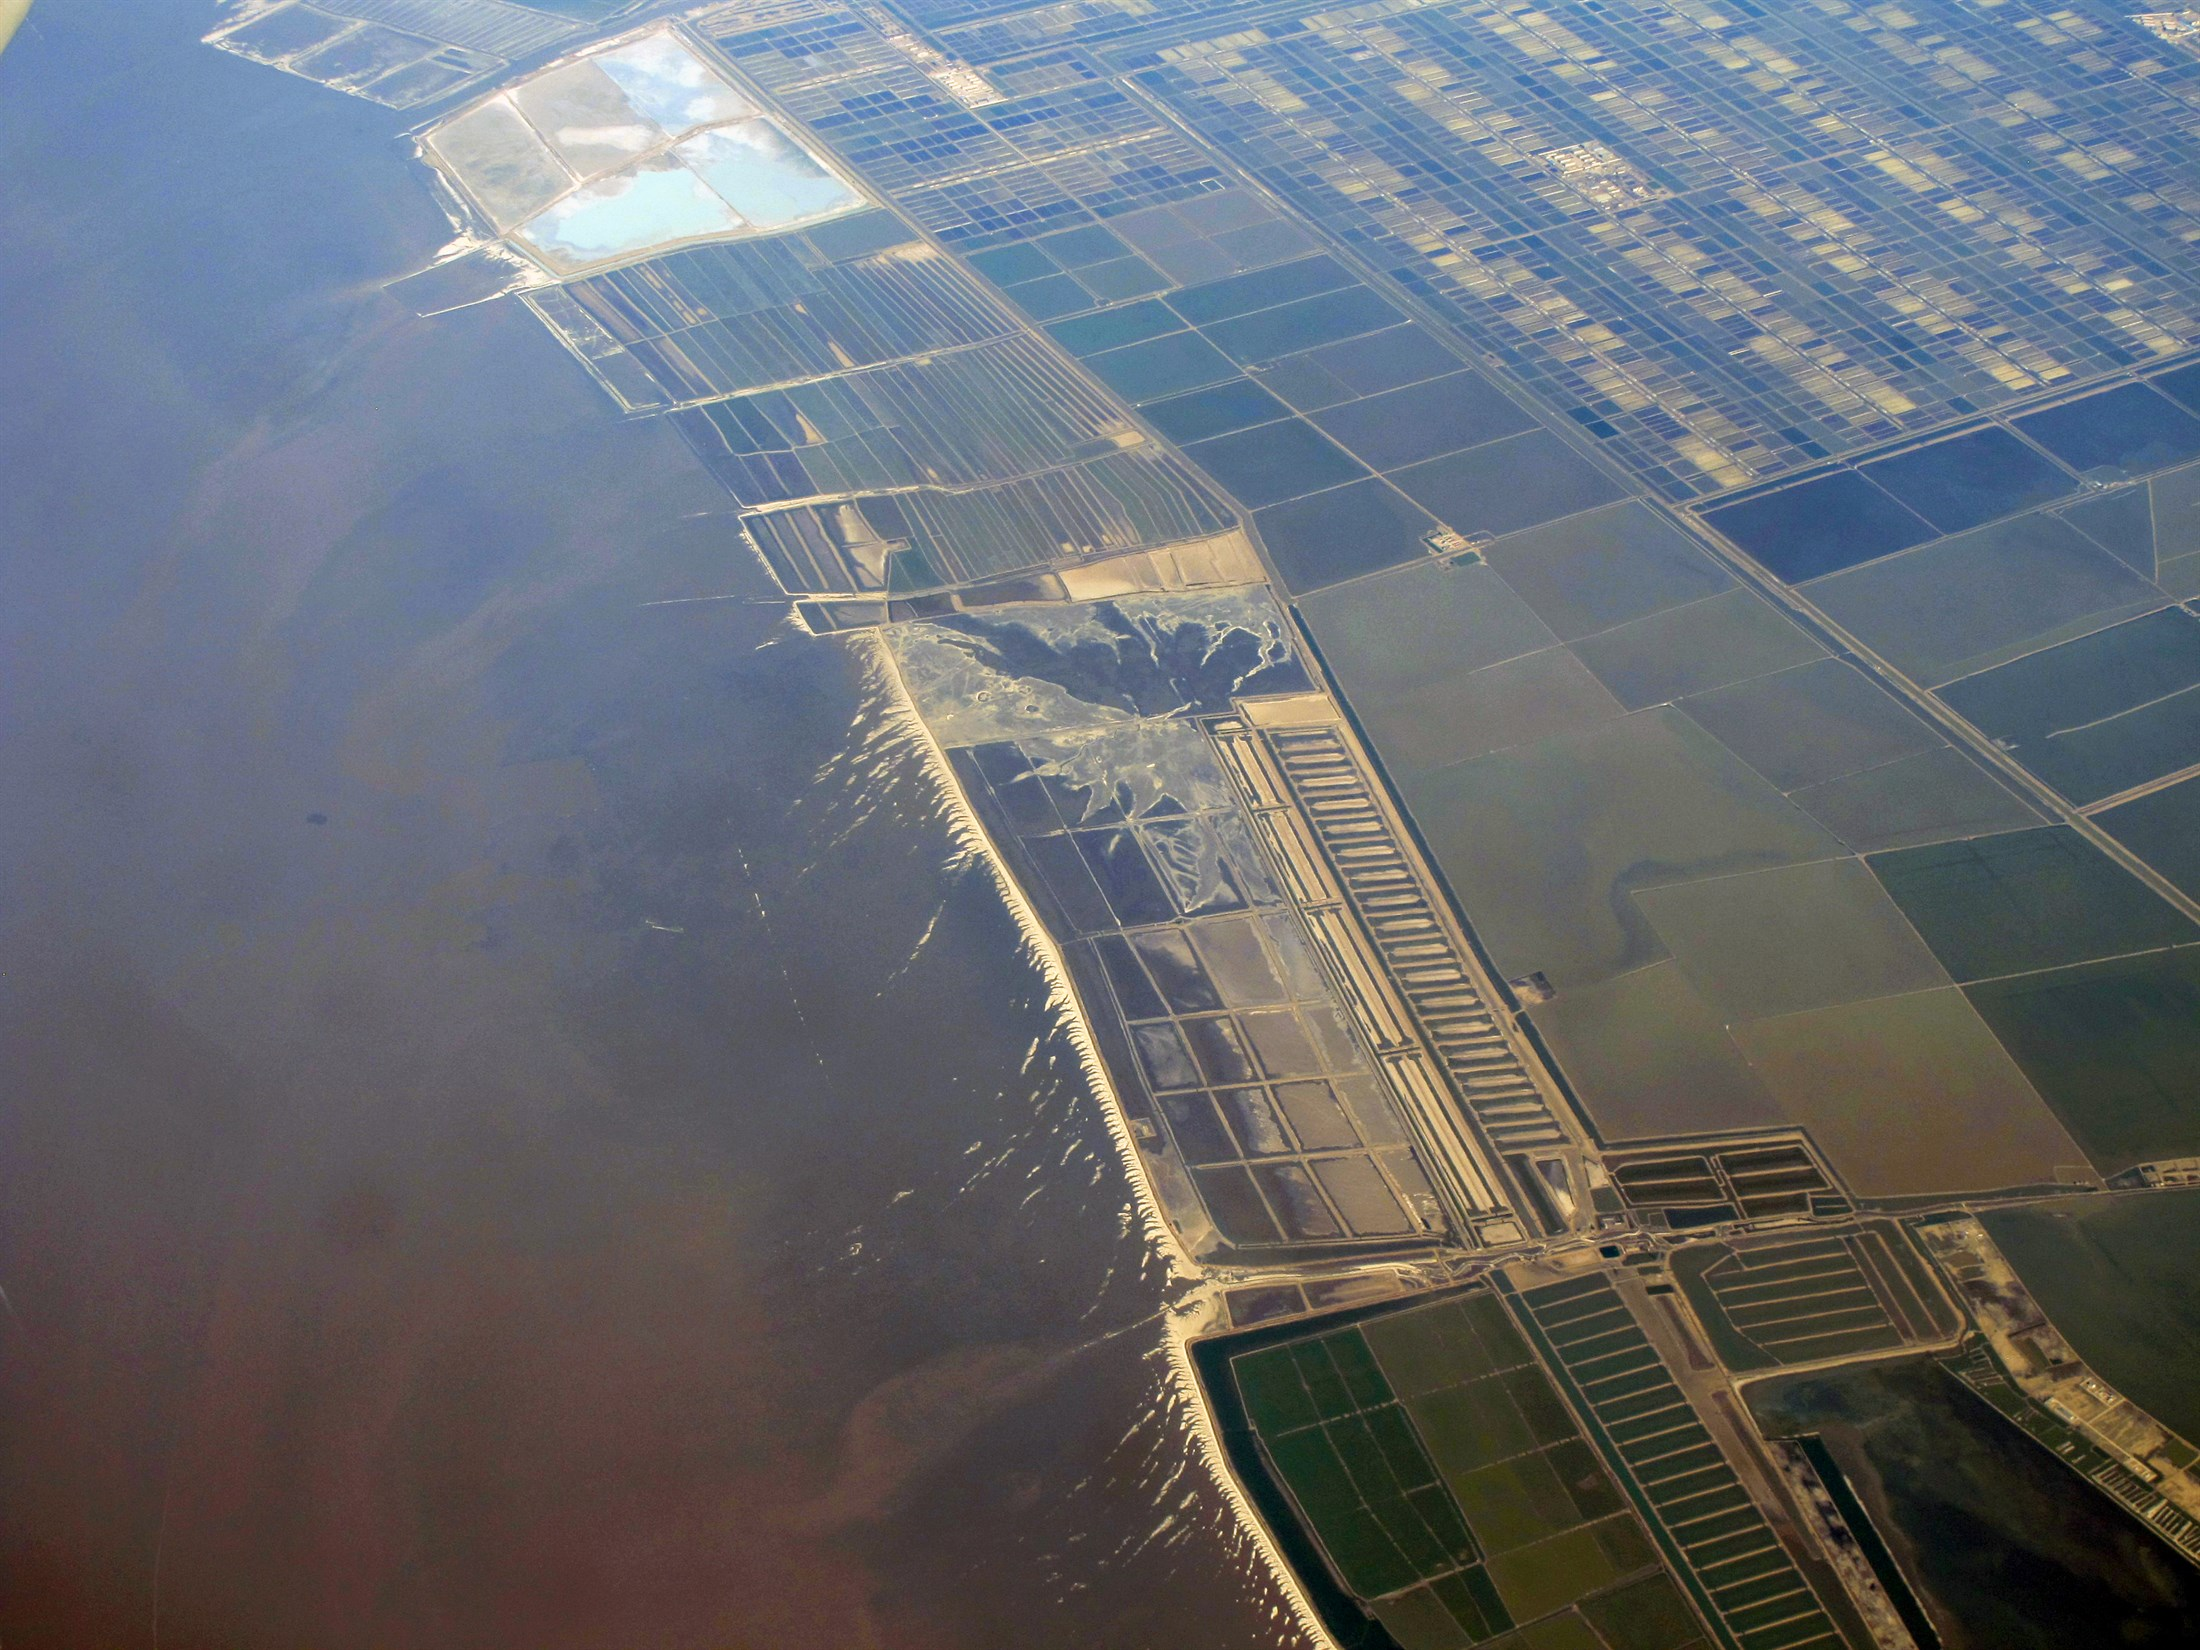 reclamation-of-tidal-flats-at-east-coast-of-china_86d5-2200x1650px